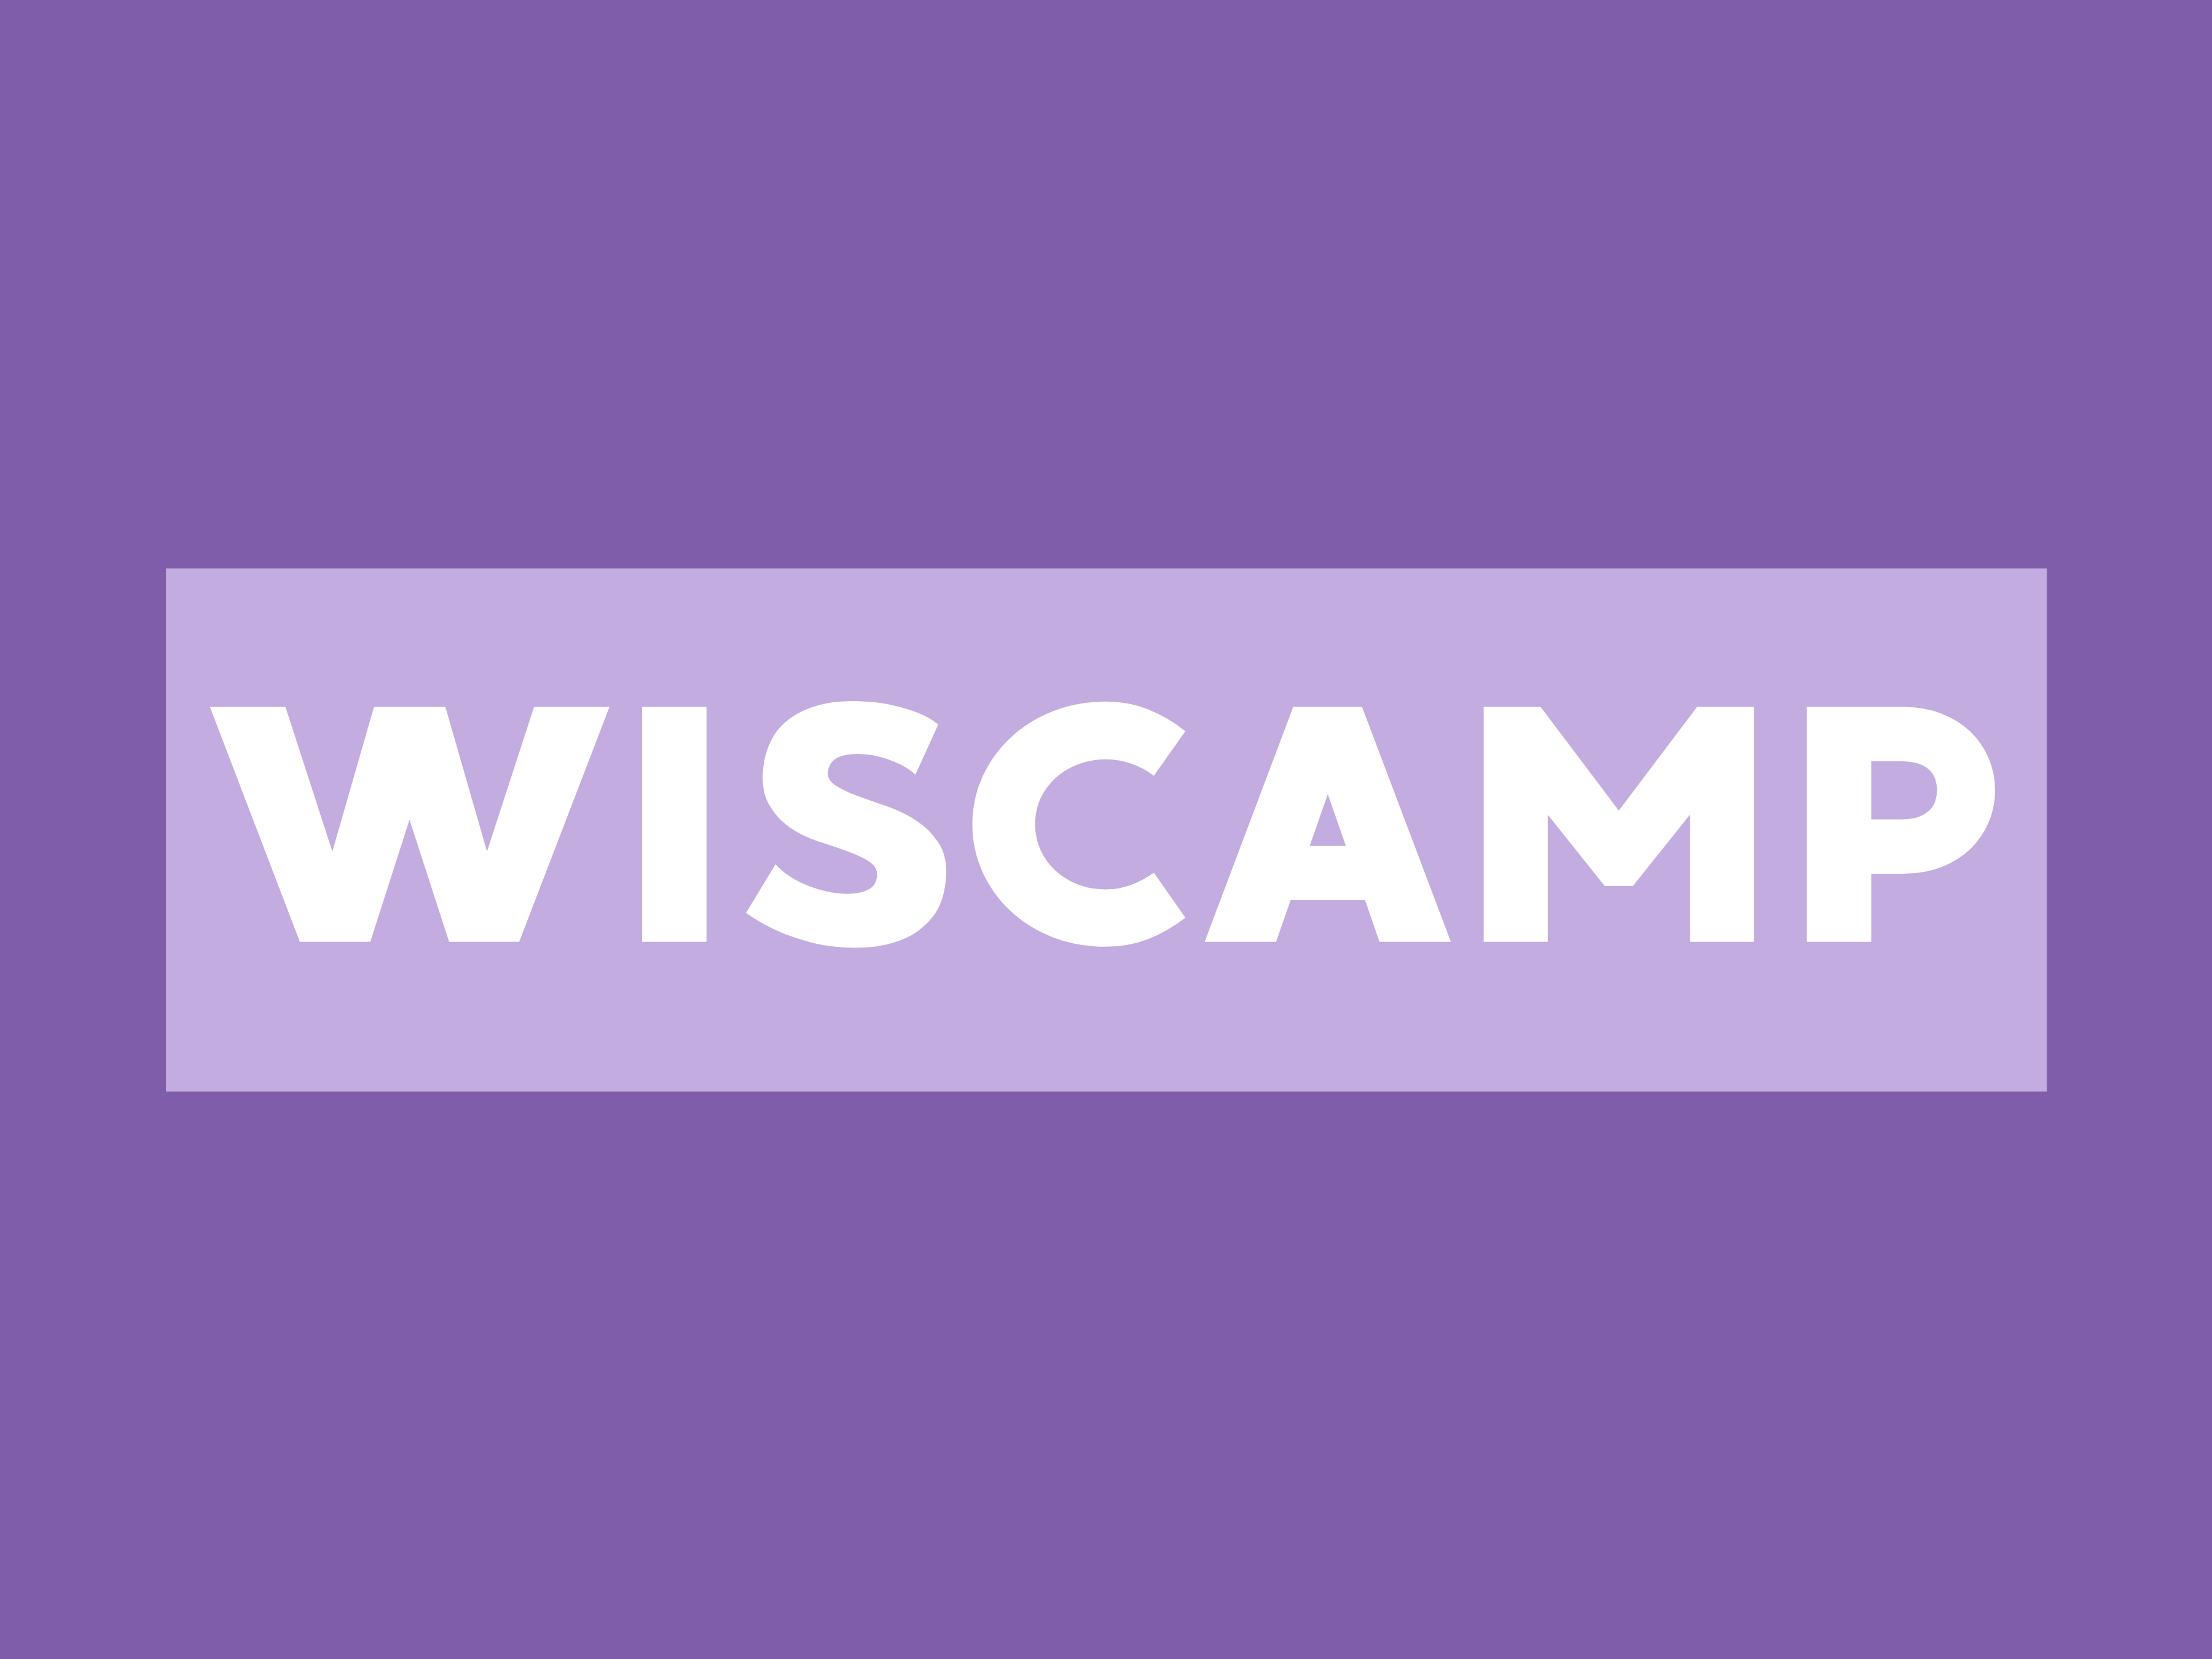 WiscAMP